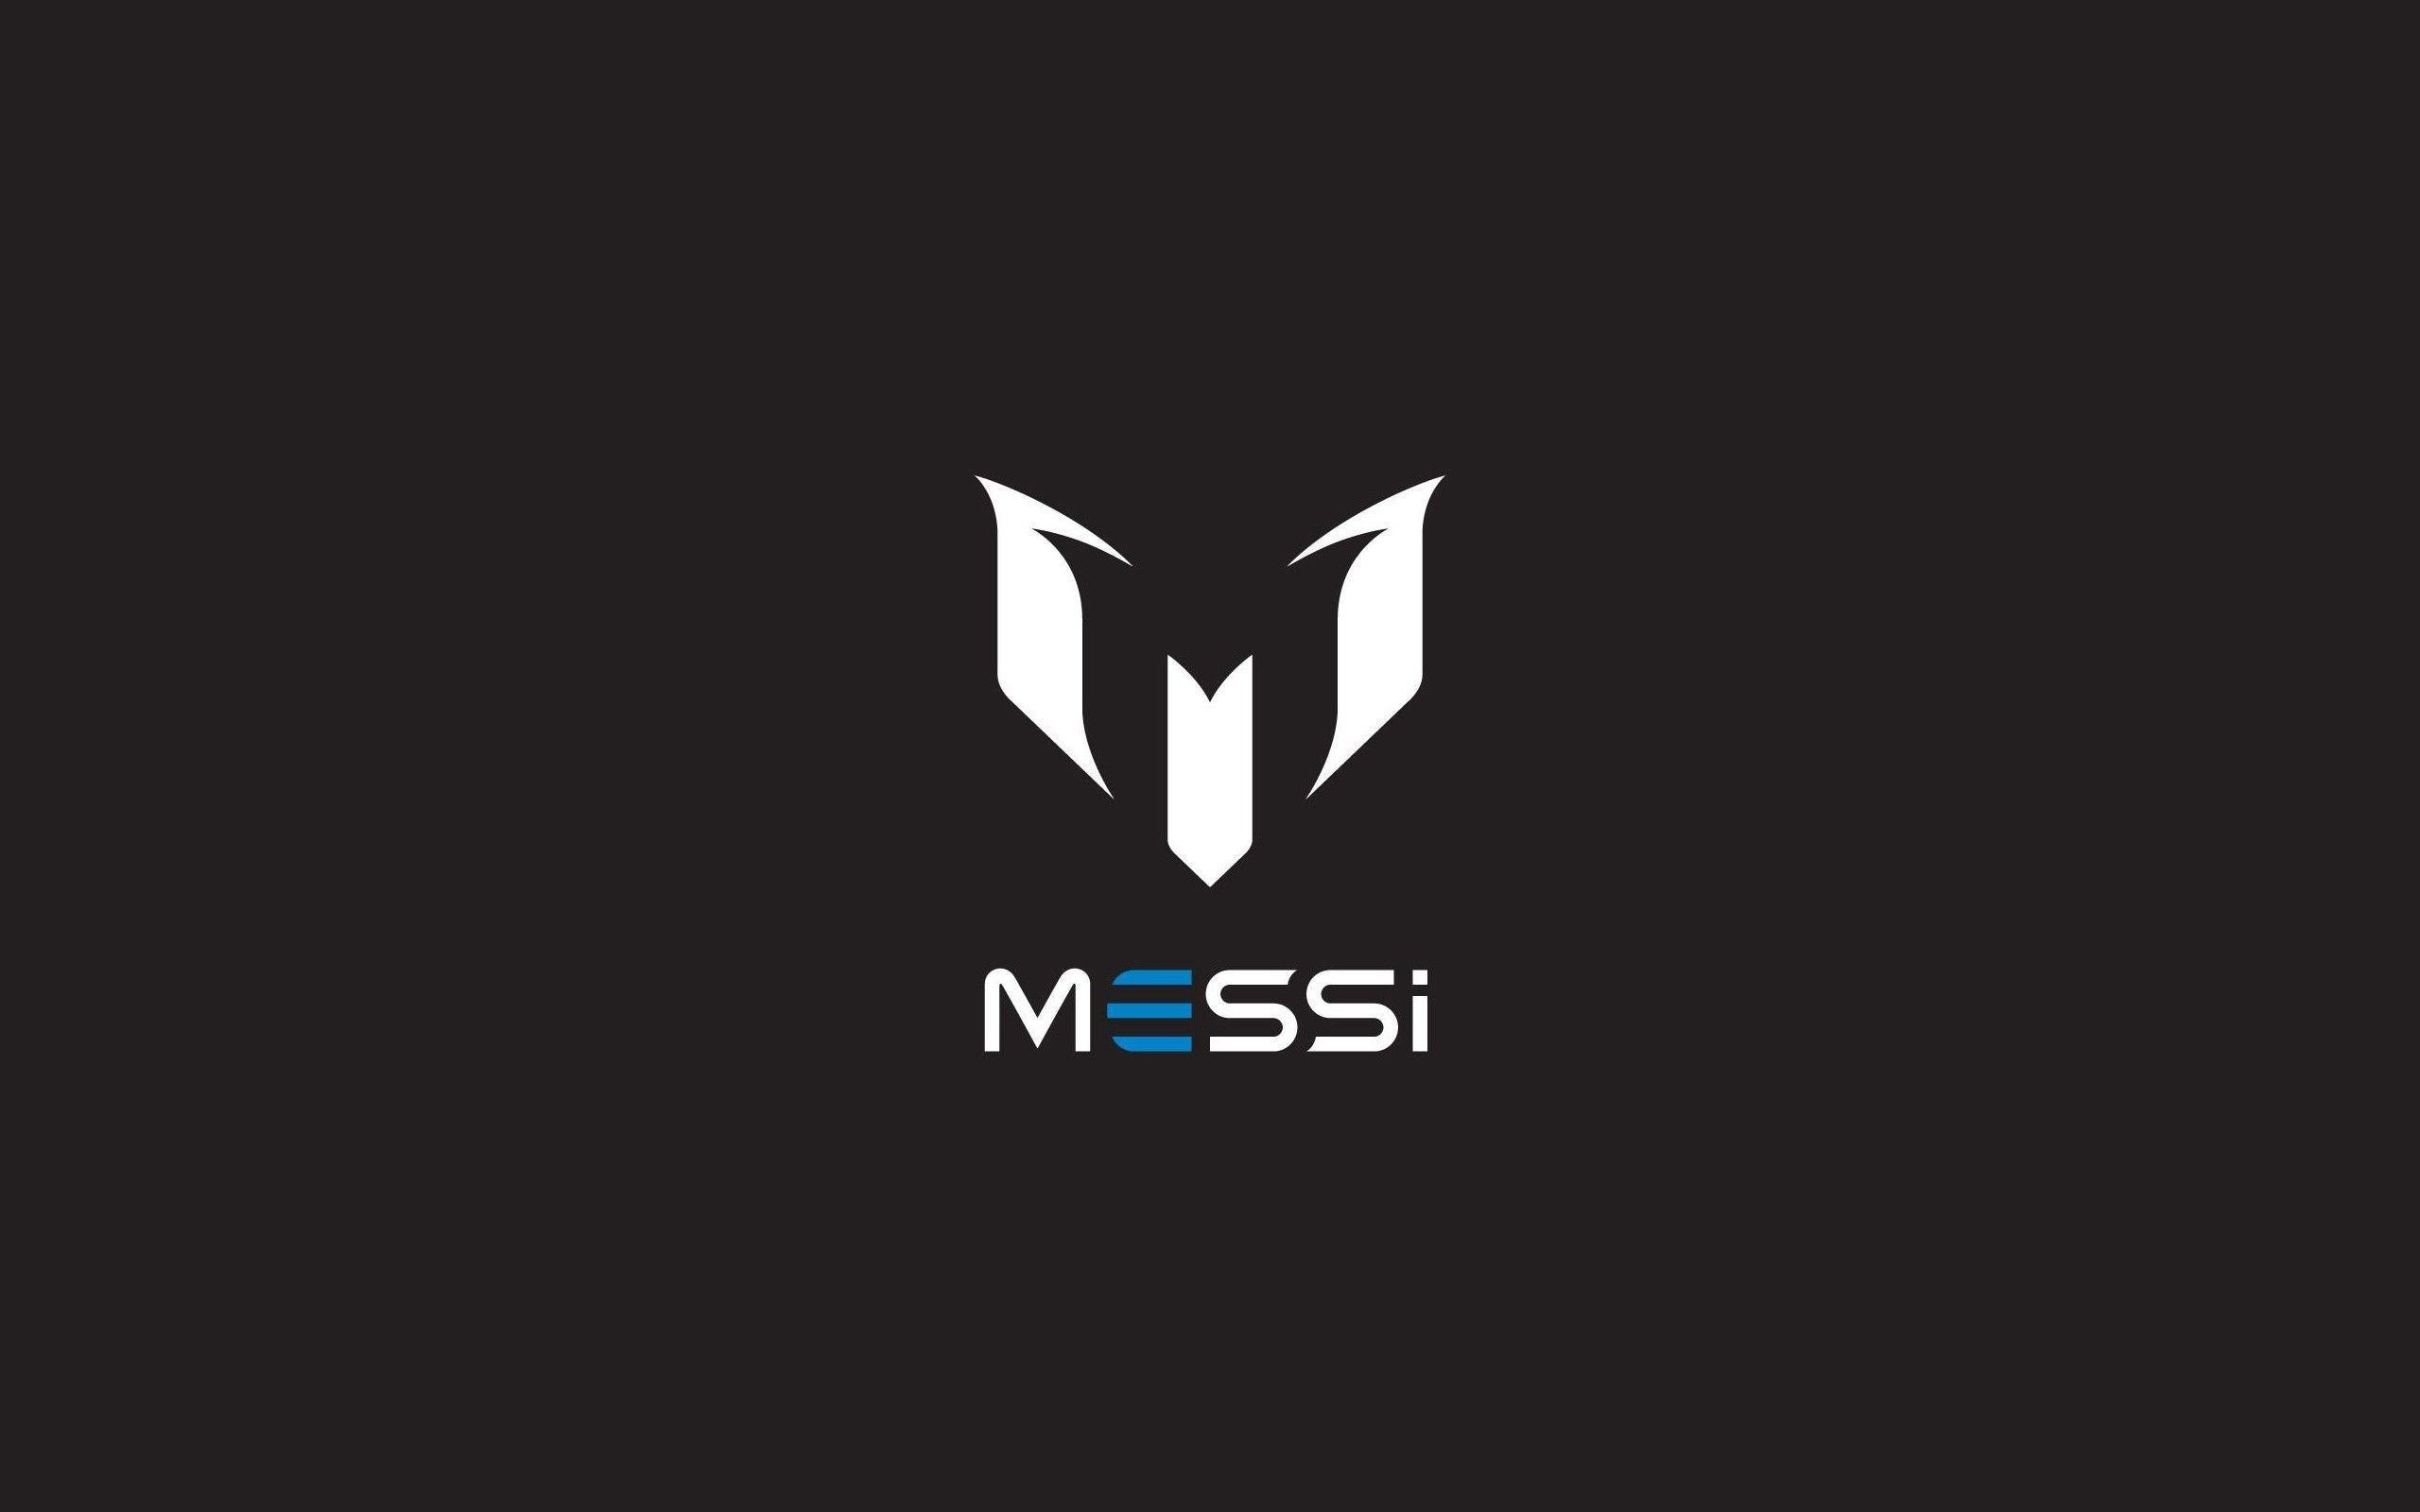 2560x1600 Messi logo Adidas wallpaper free desktop backgrounds and wallpapers